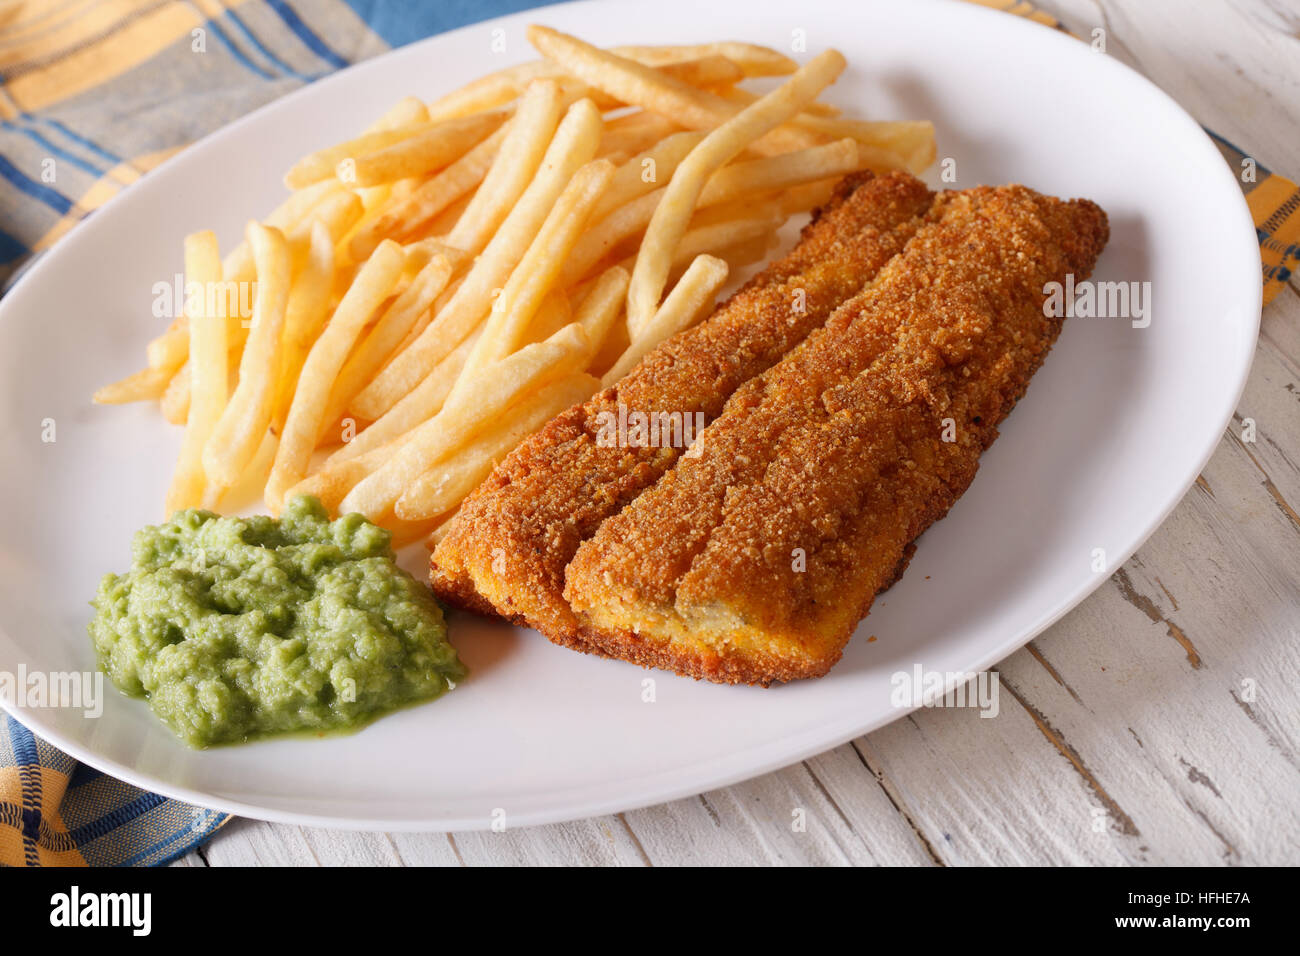 English food: fish in breadcrumbs with fried potatoes and pea puree close-up on a plate. horizontal - Stock Image